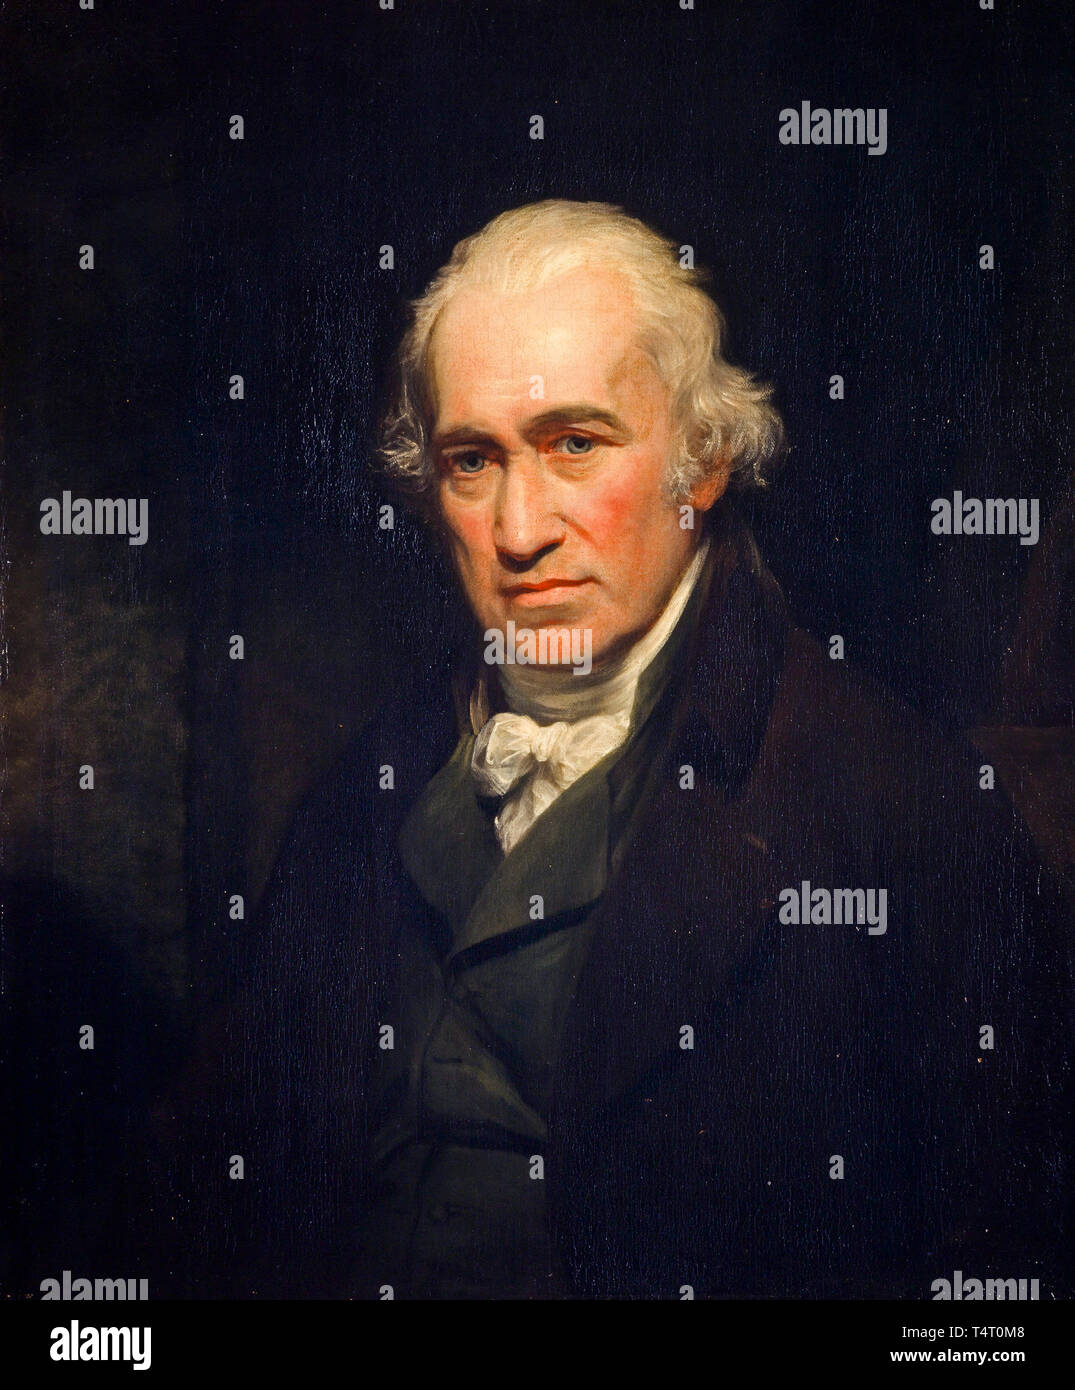 James Watt (1736-1819) portrait of the engineer, inventor of the steam engine by John Partridge, after Sir William Beechey 1806 Stock Photo